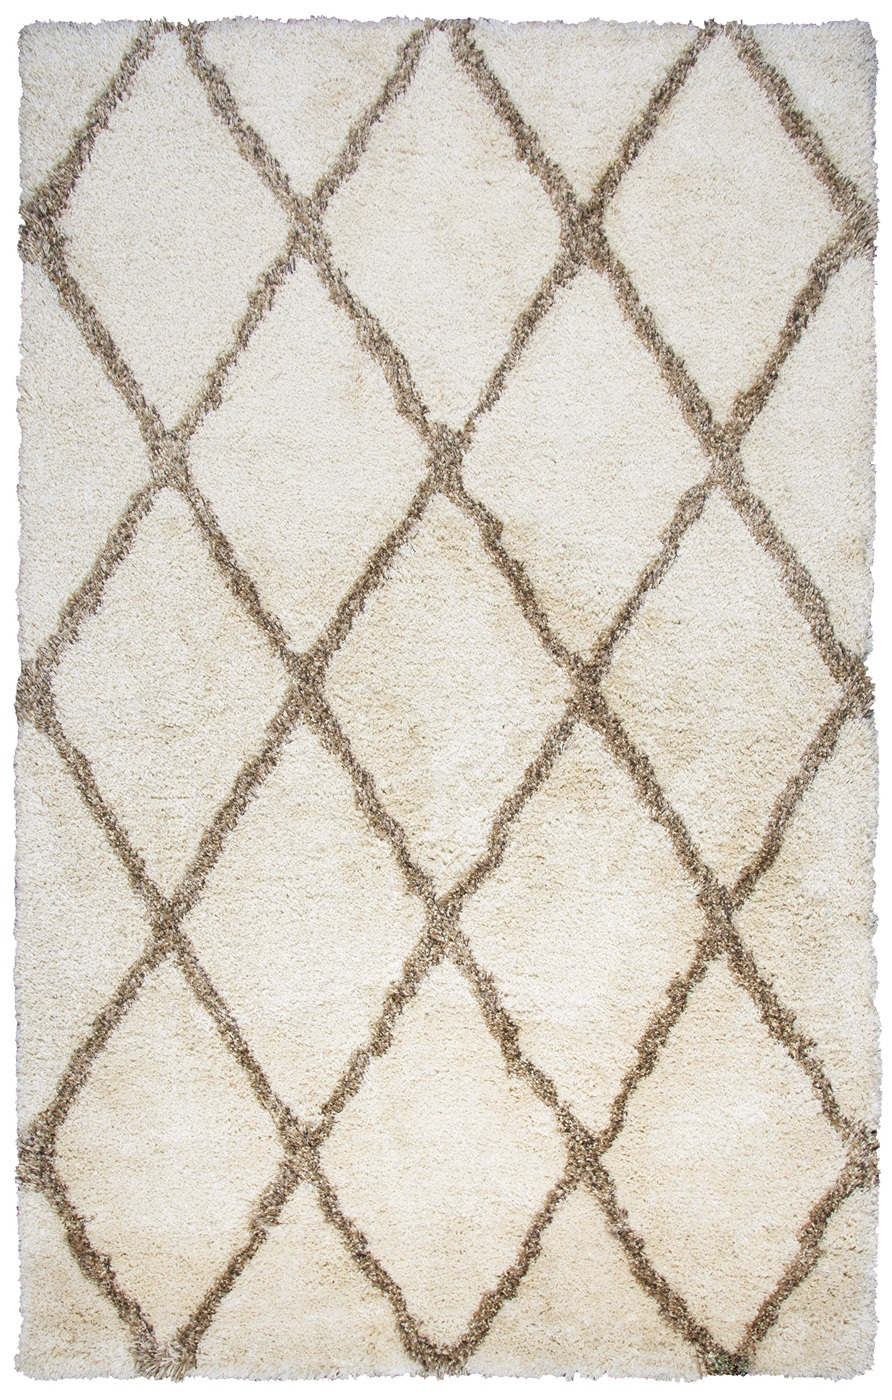 Commons Diamond Pattern Area Rug In Ivory Amp Brown 8 X 10